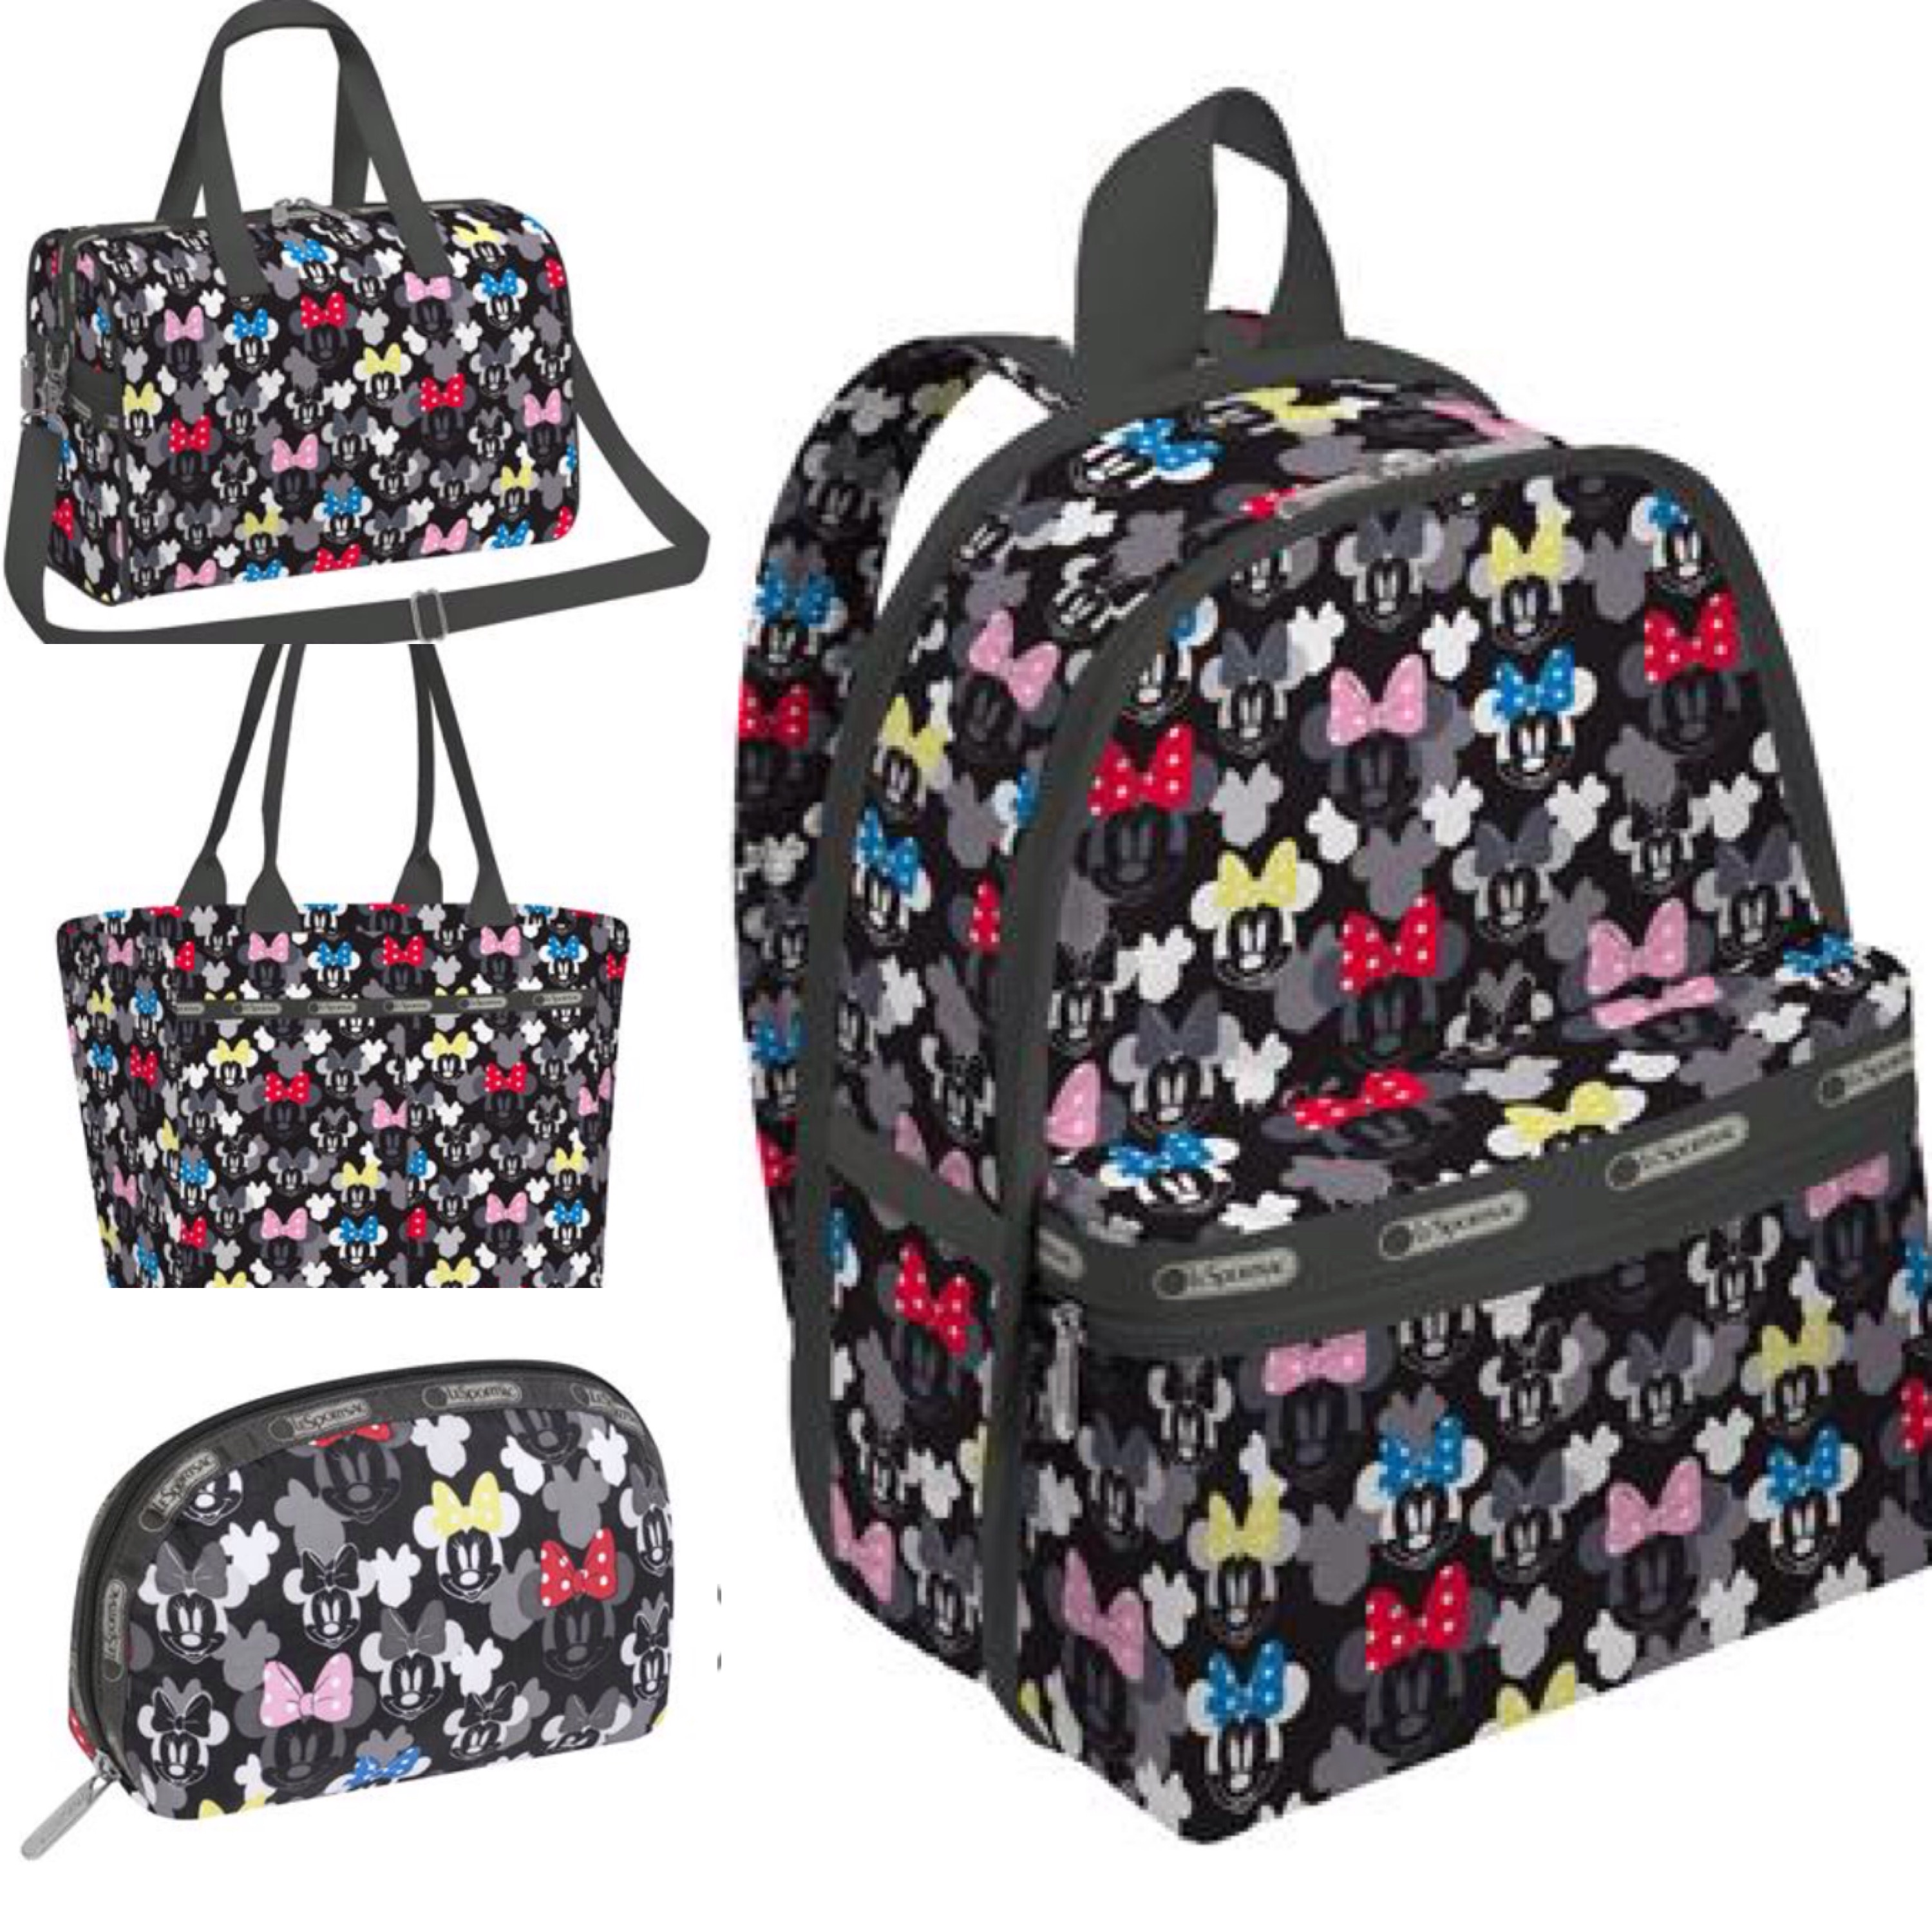 Disney LeSportsac Minnie Mouse Bags Spring 2015 ...